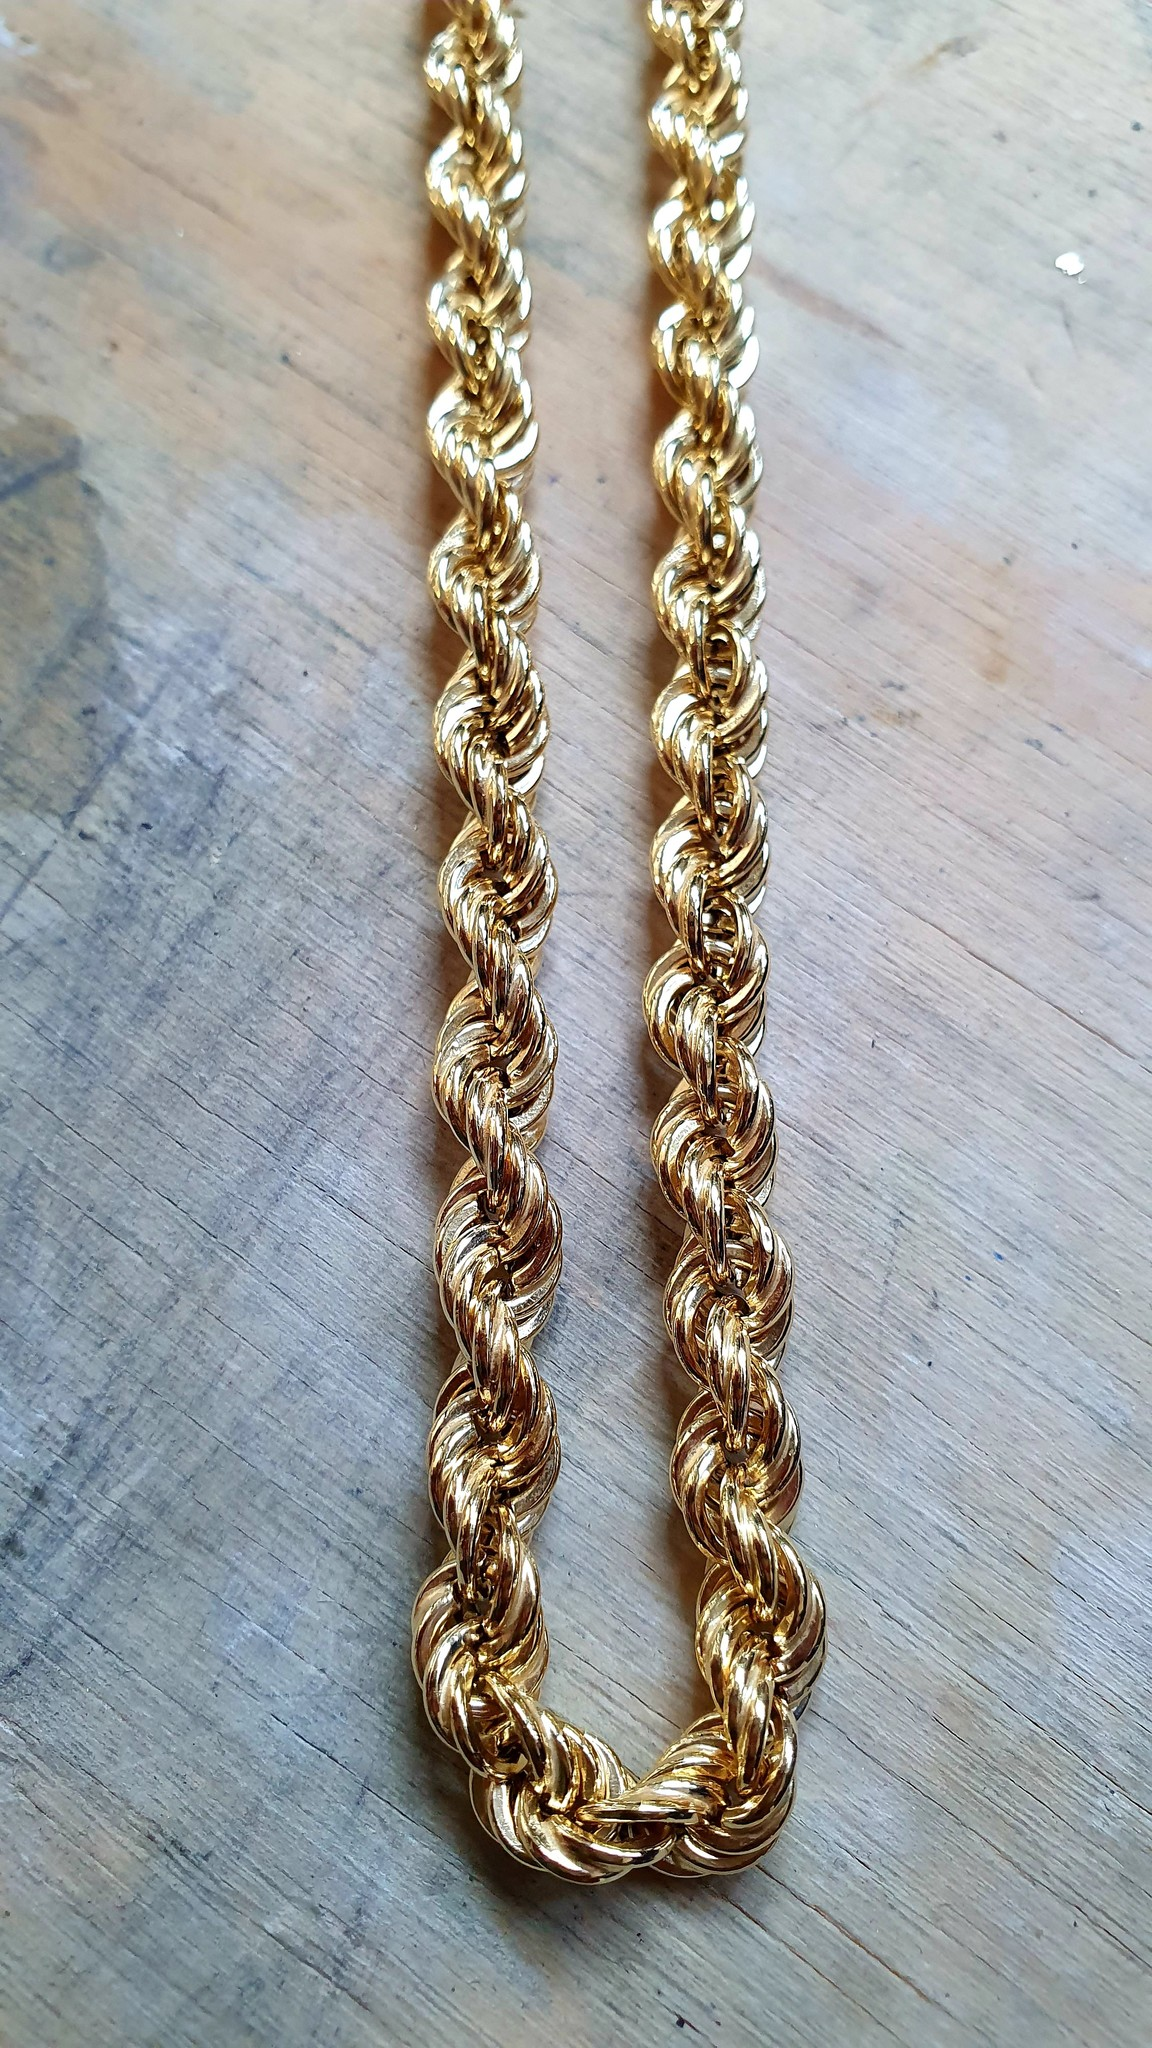 Rope Chain 14k-6 mm-1